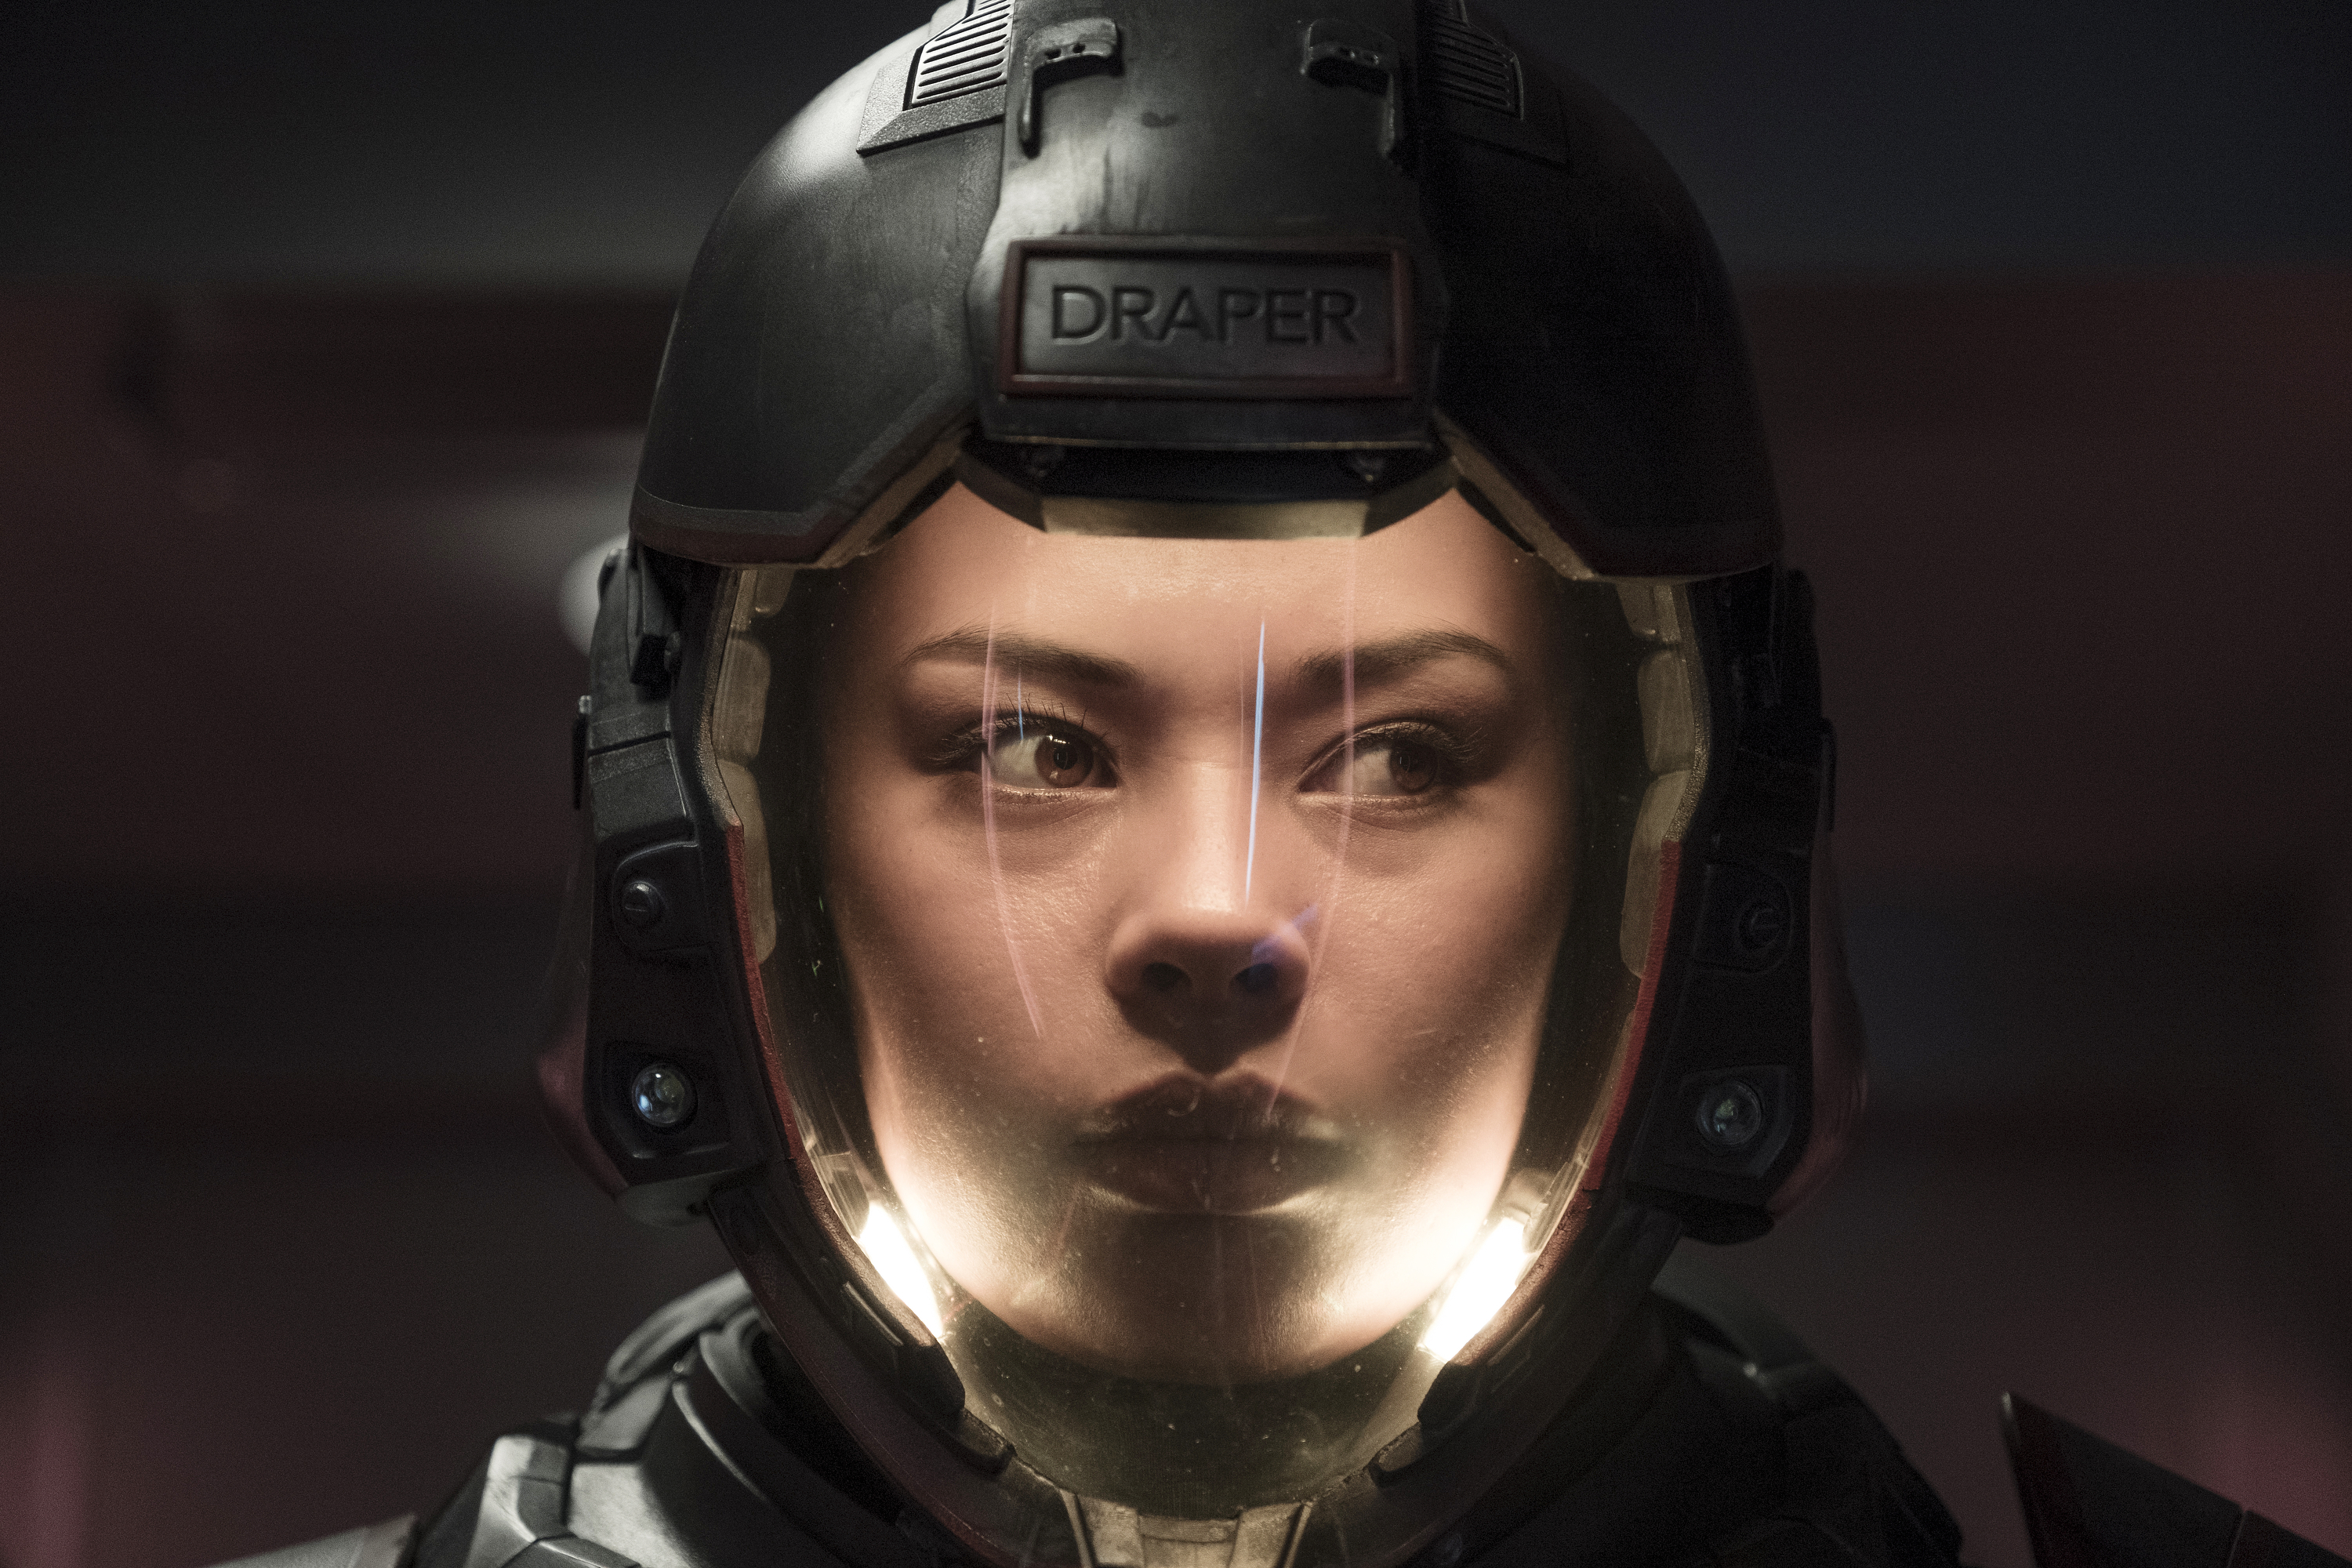 After SyFy Dropped It, Amazon Has Picked Up The Expanse